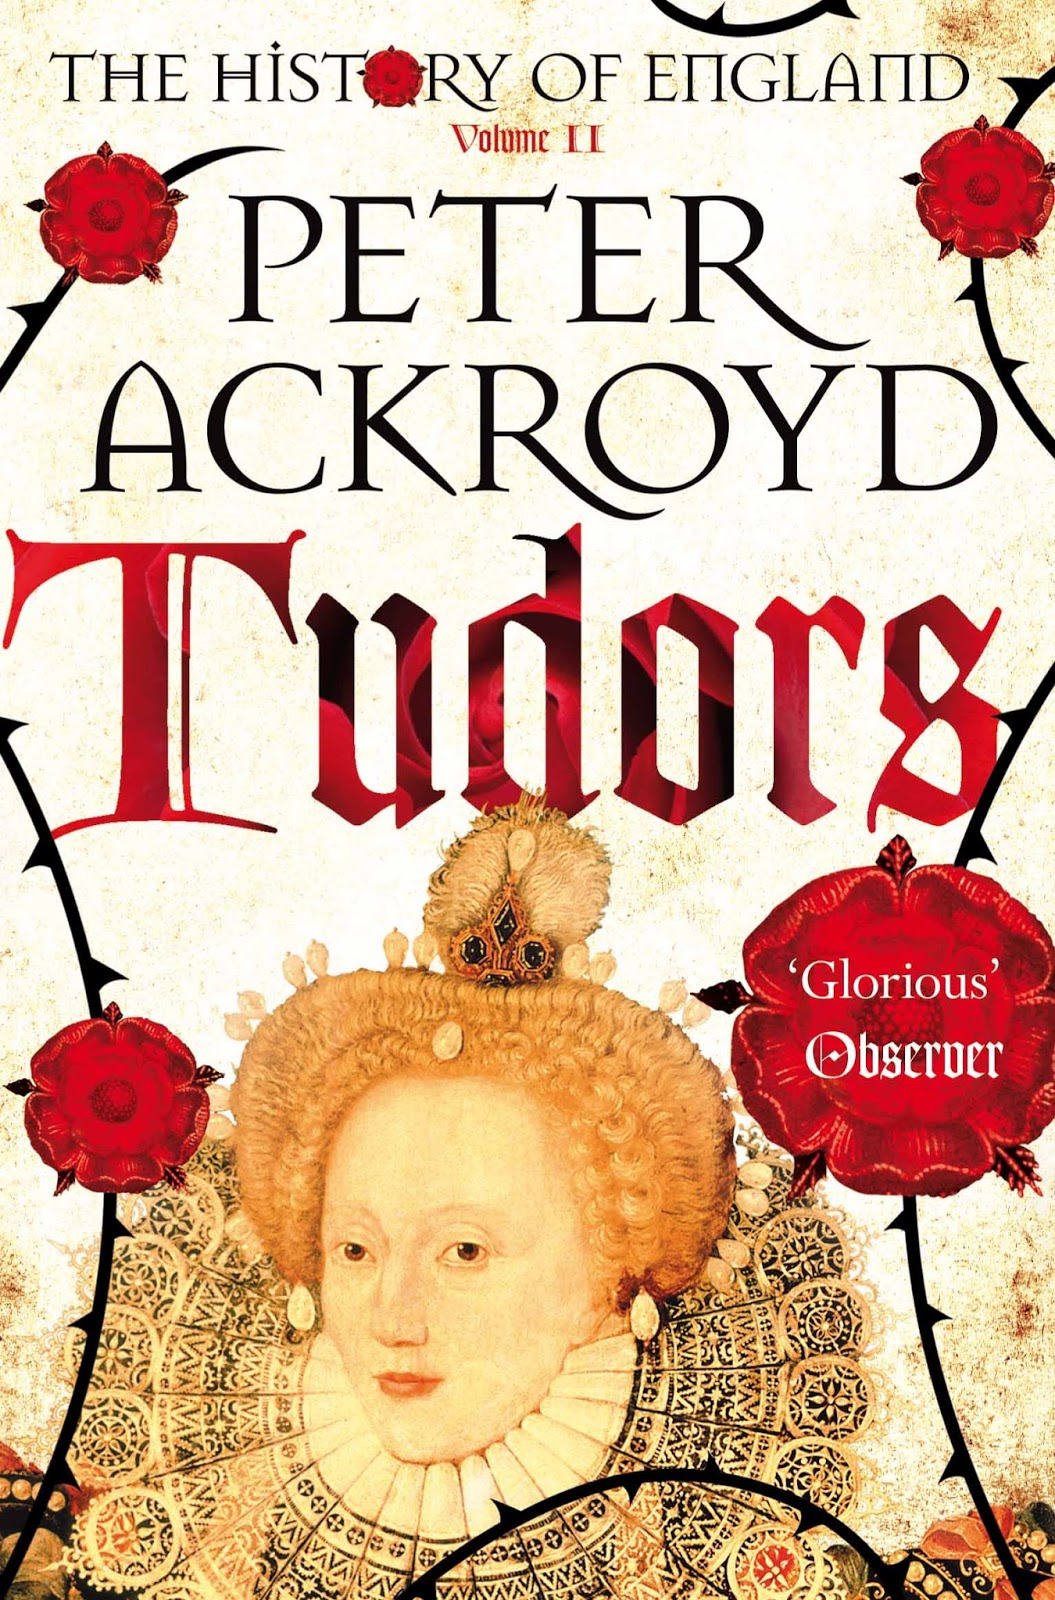 Win Tudors by Peter Ackroyd